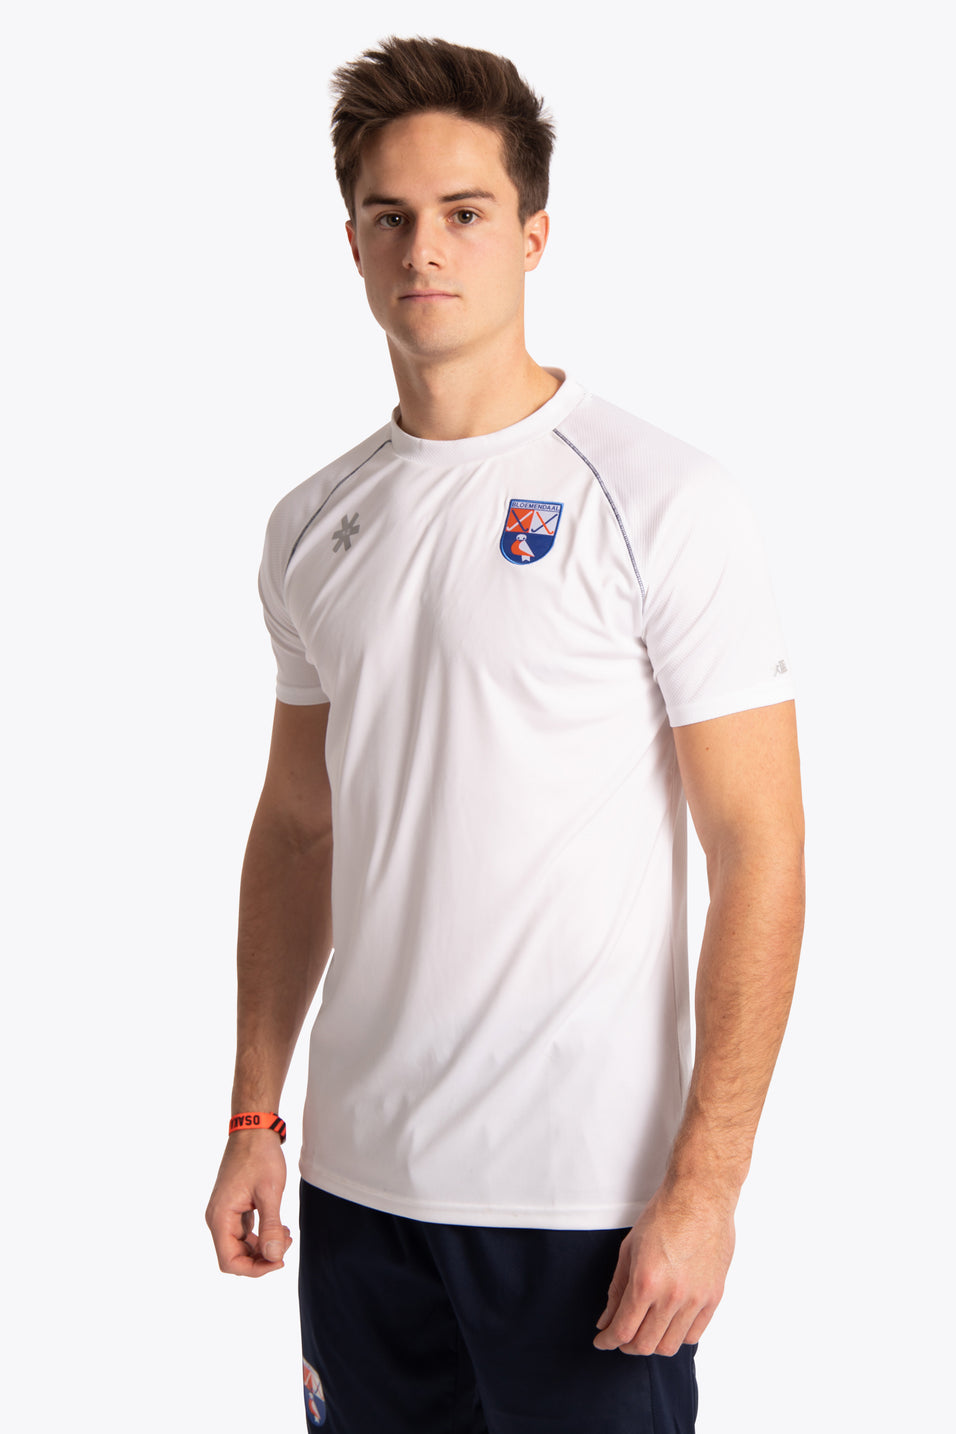 HC Bloemendaal Men Training Tee - White